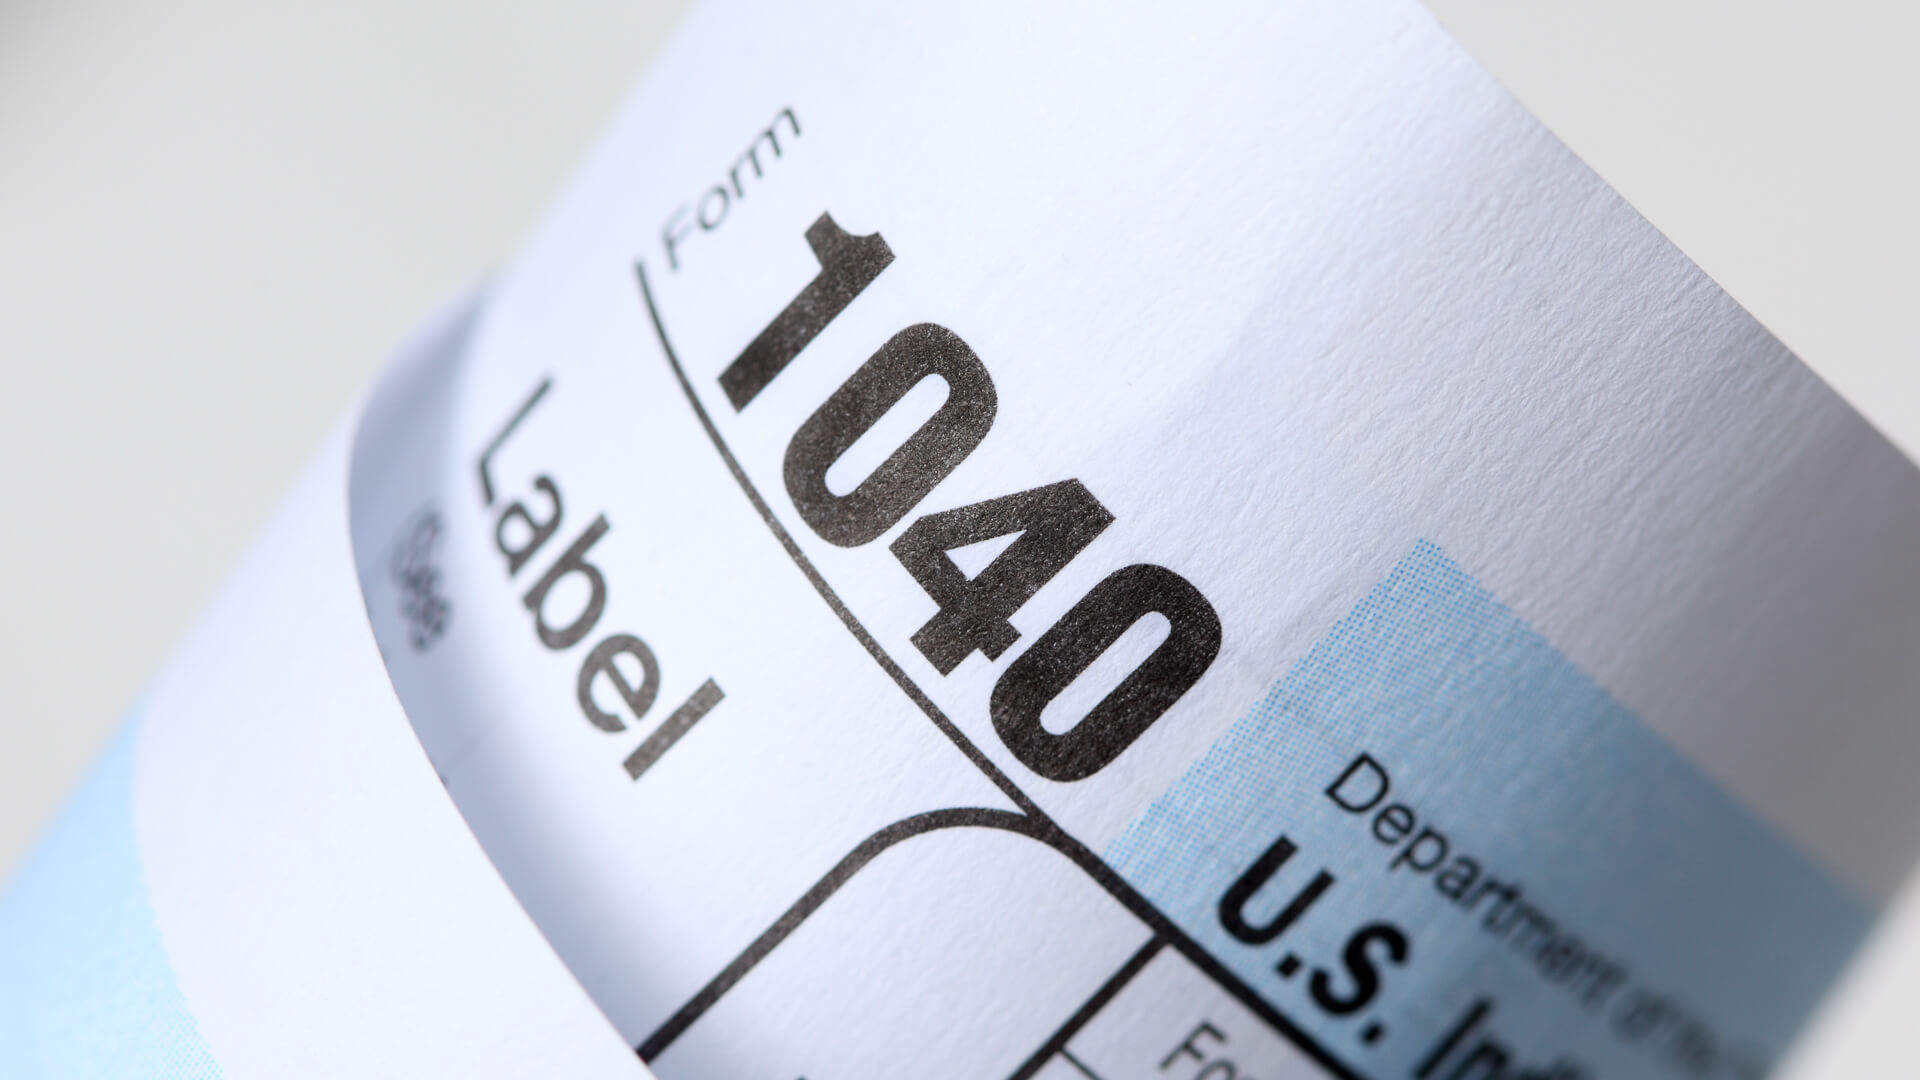 Get ahead on your tax return by answering these 15 irs questions get ahead on your tax return by answering these 15 irs questions falaconquin